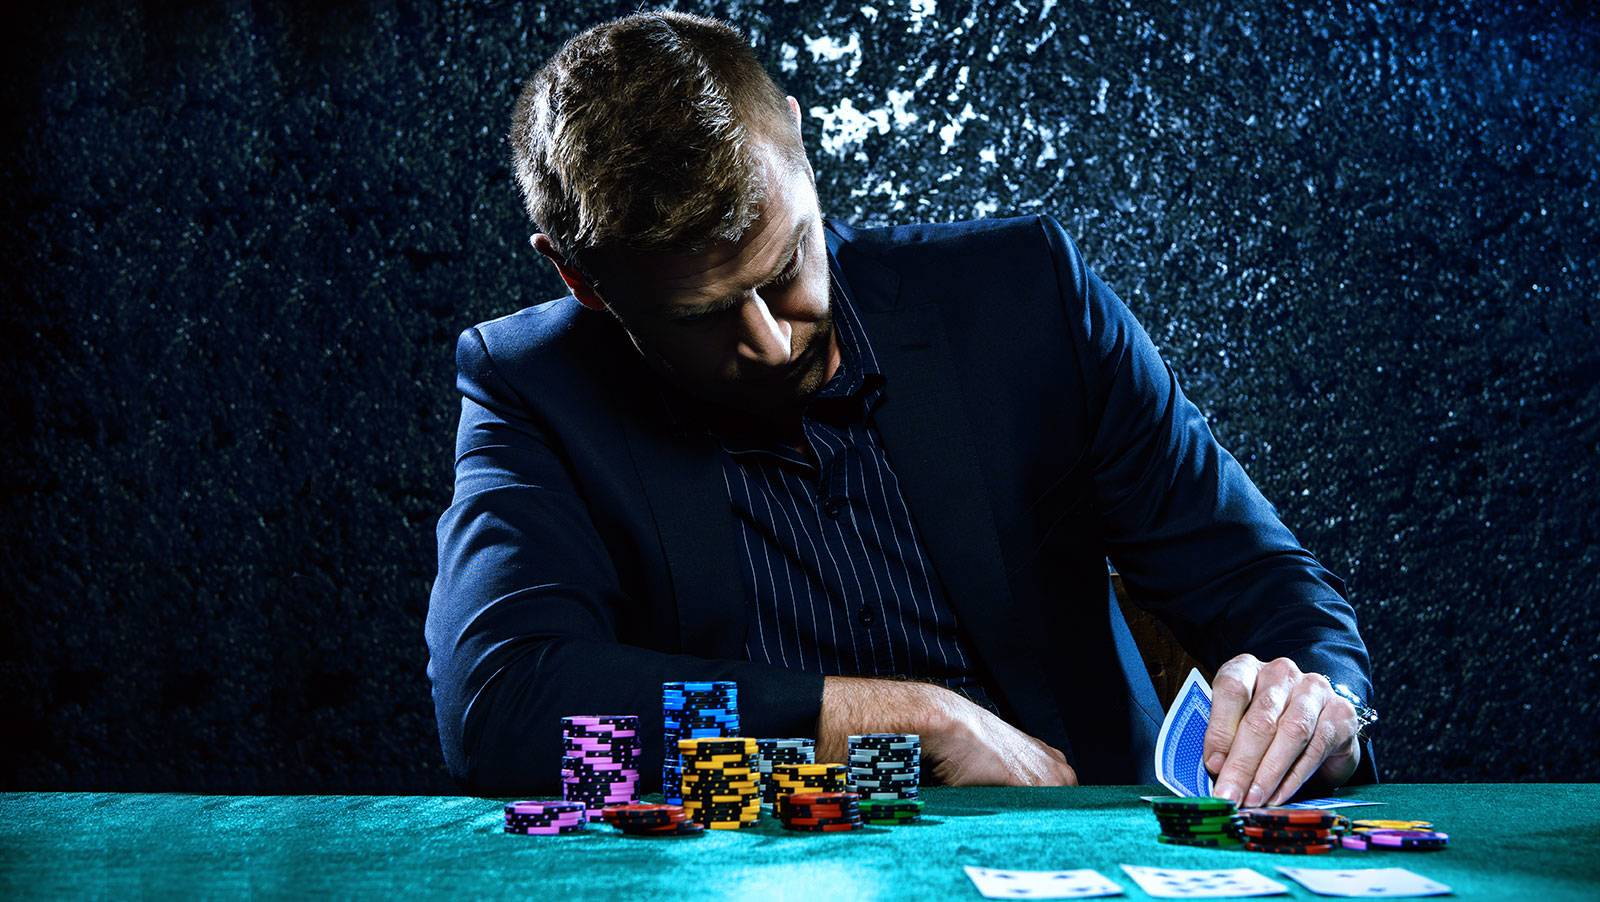 Casinos of Chile see drop in revenues for May